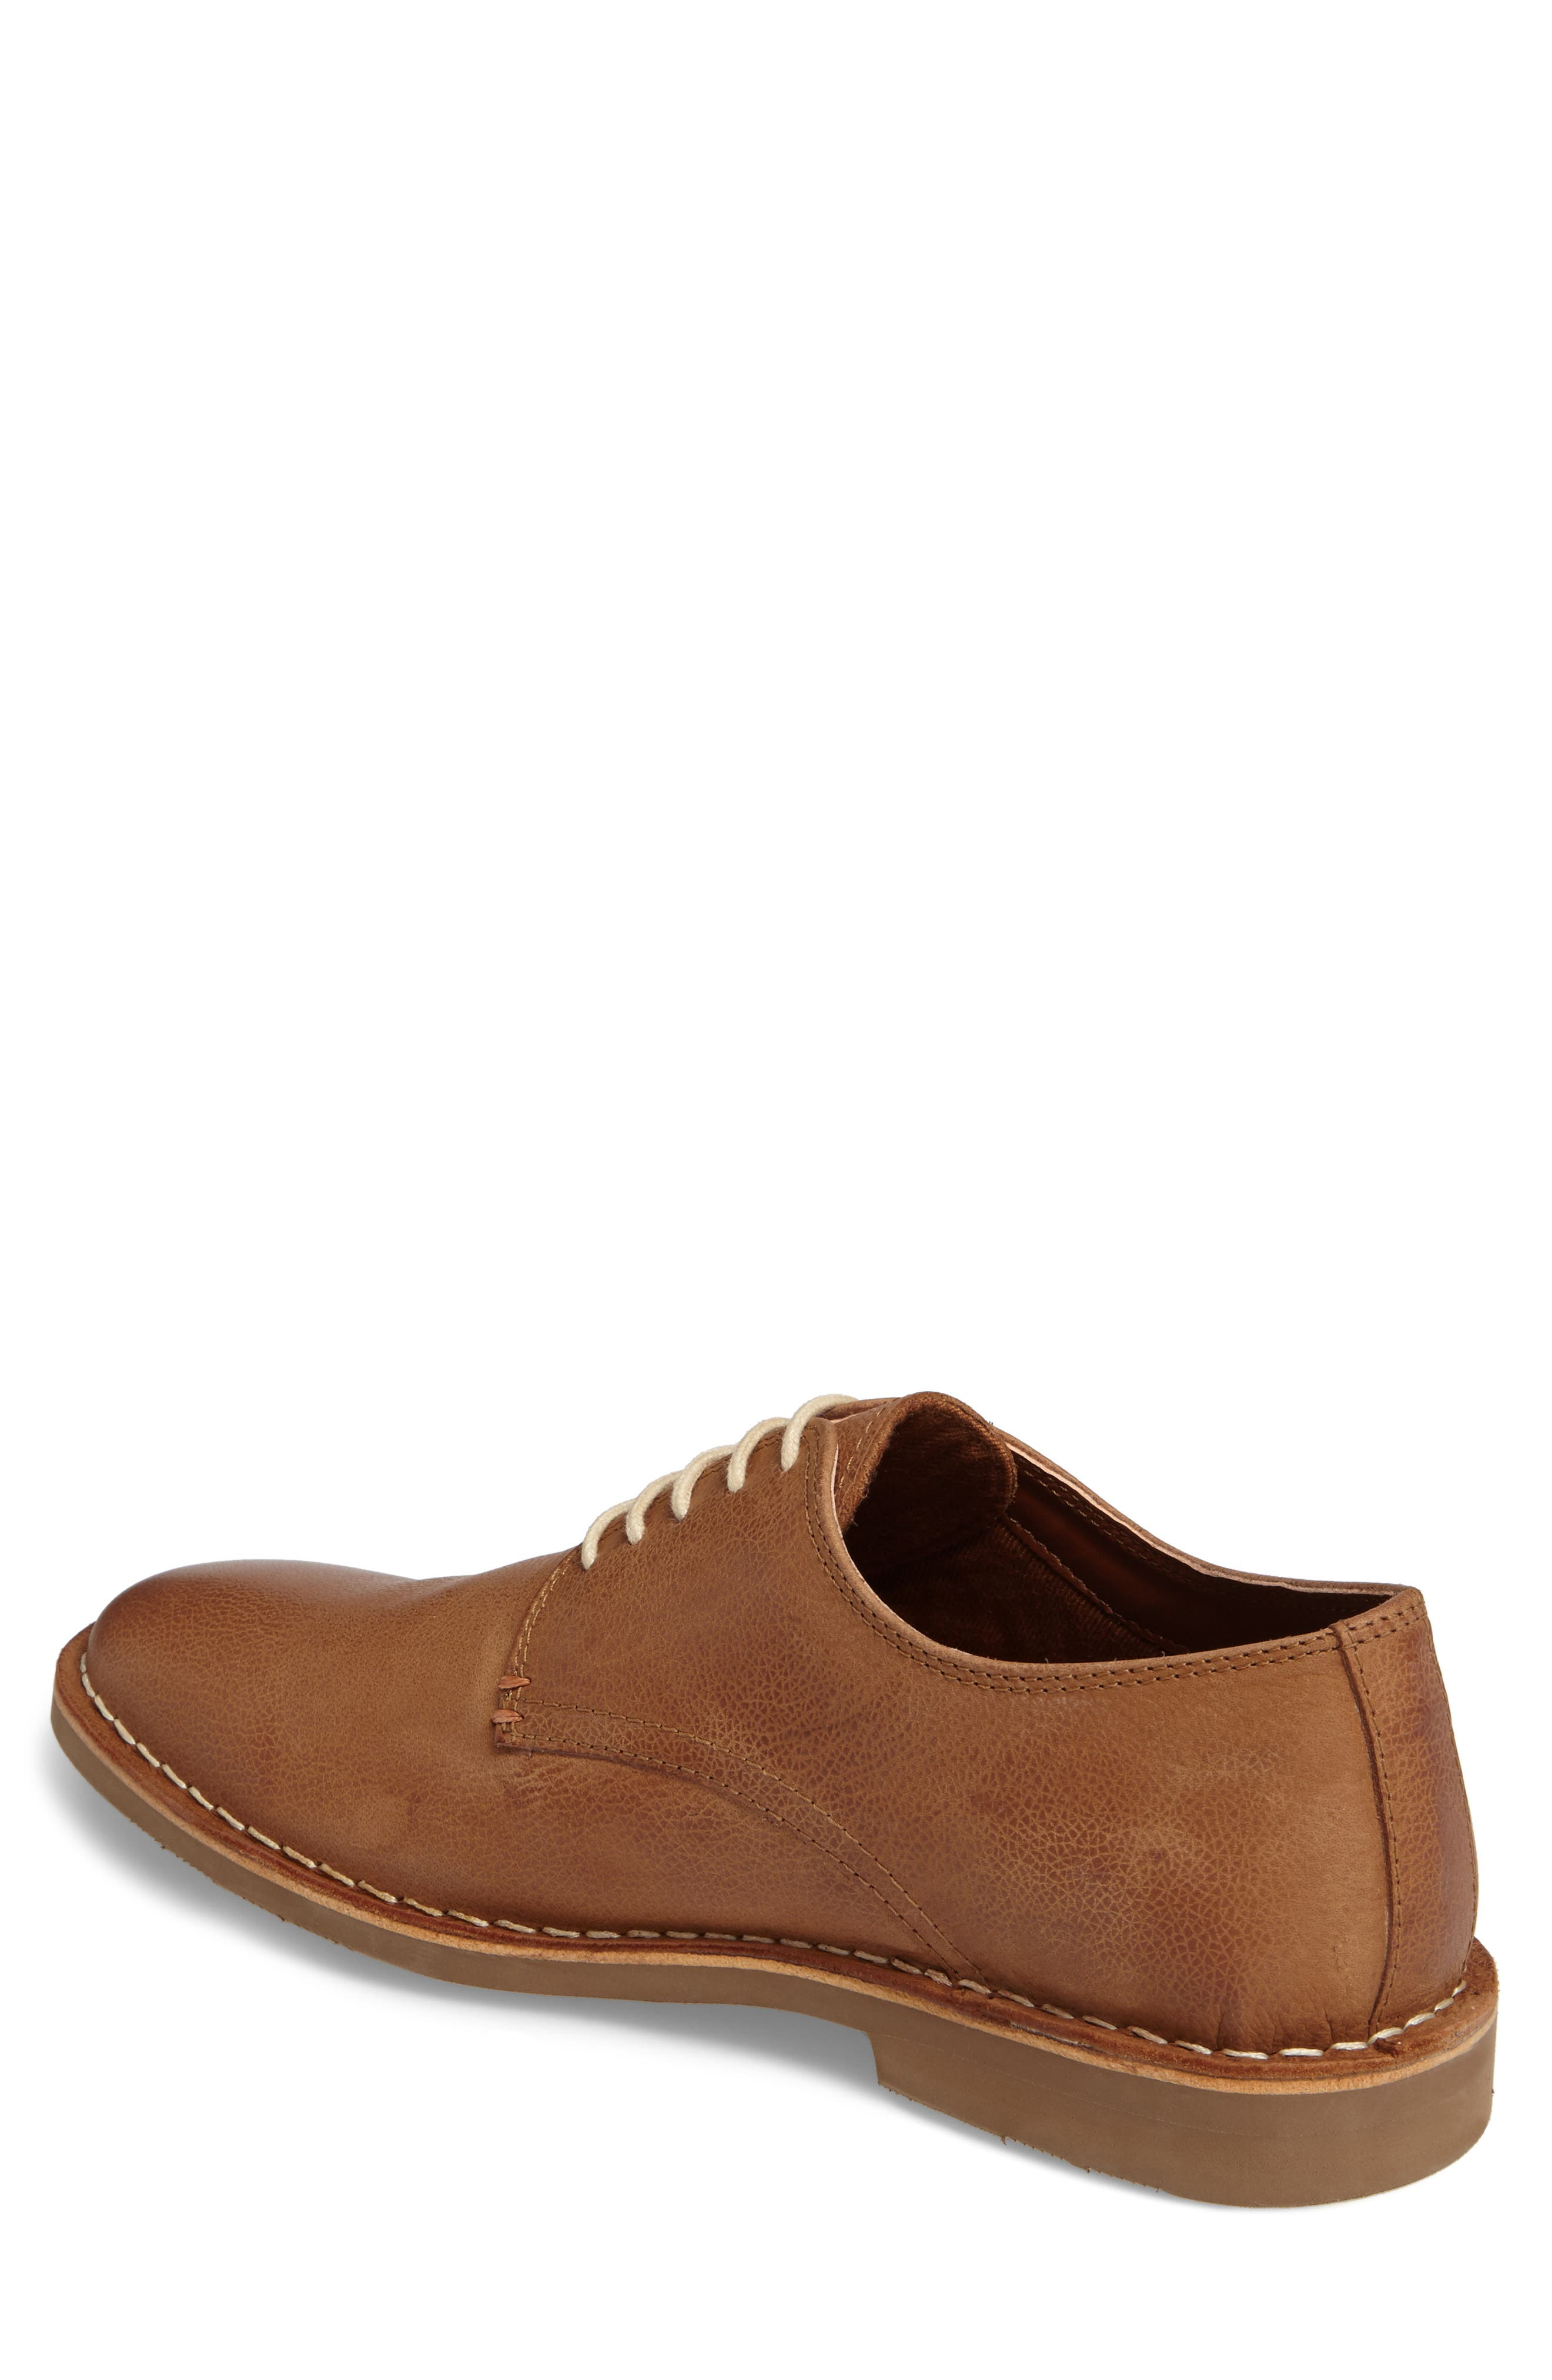 Kenneth Cole New York En-Deer-ing Derby,                             Alternate thumbnail 2, color,                             Tan Leather